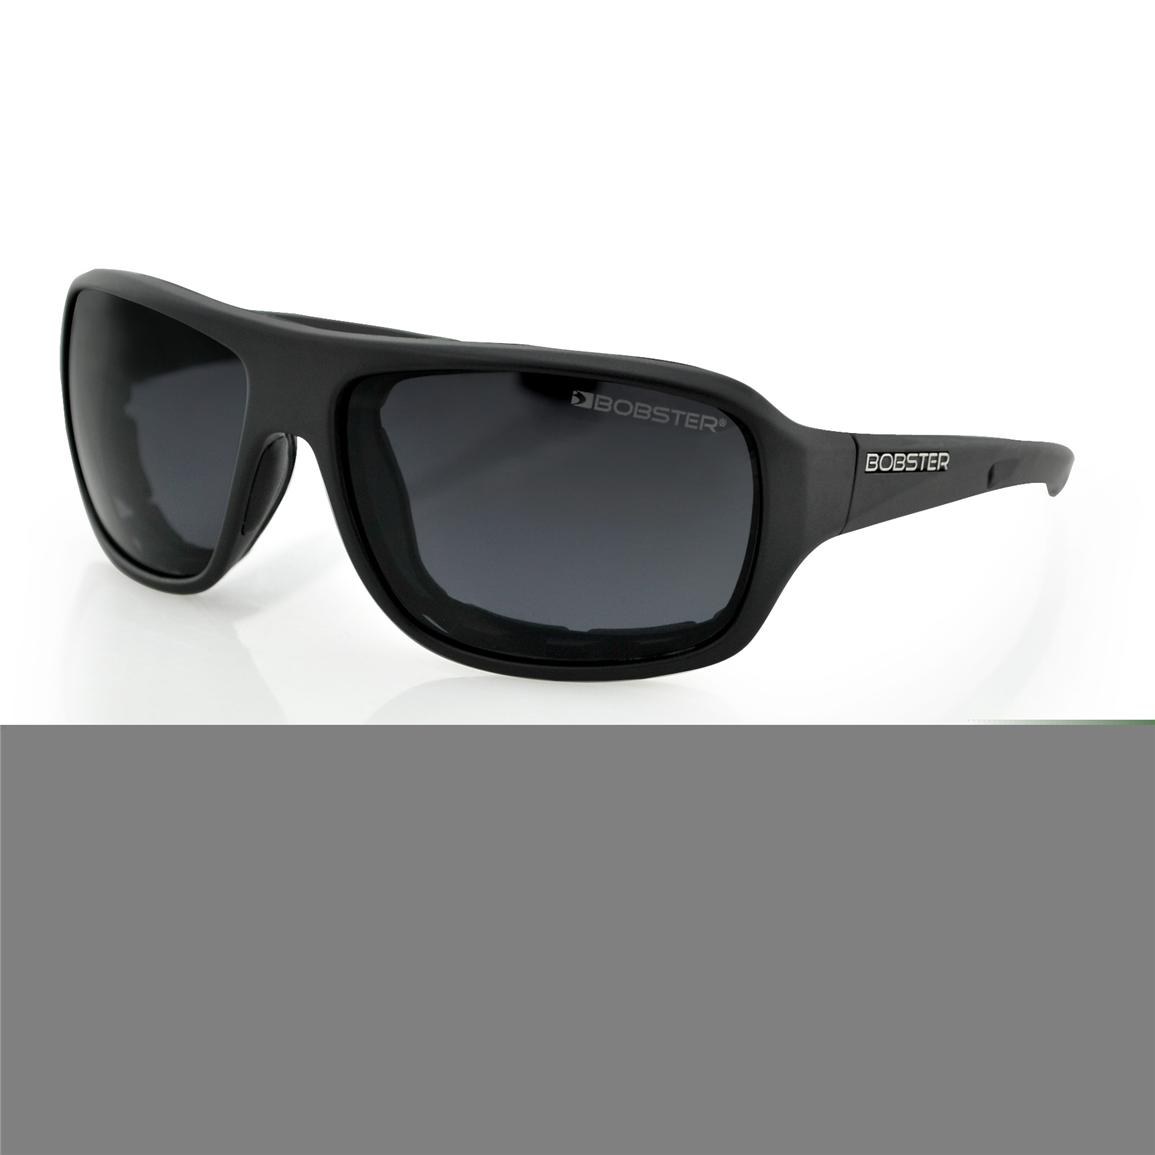 Bobster Eyewear® Informant Sunglasses with Removable Foam